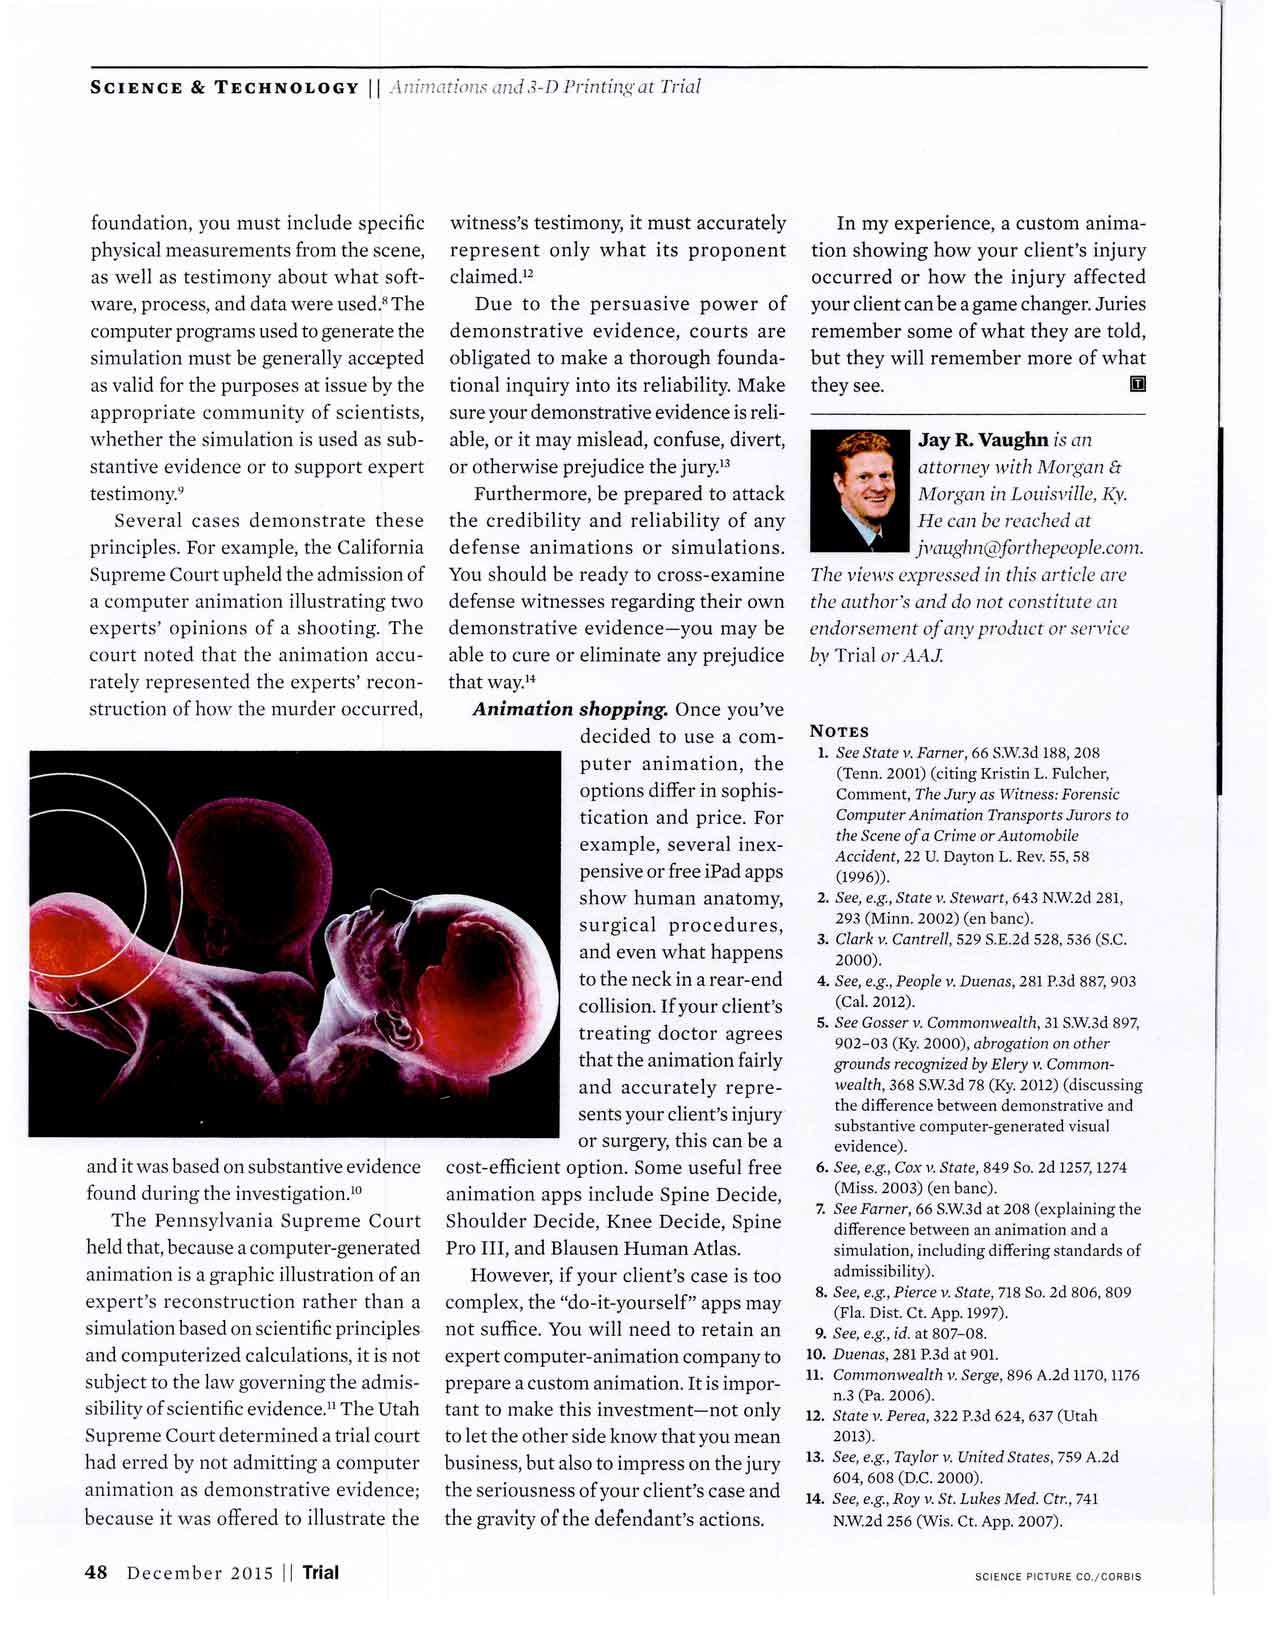 Animations Article - Trial Magazine copy3